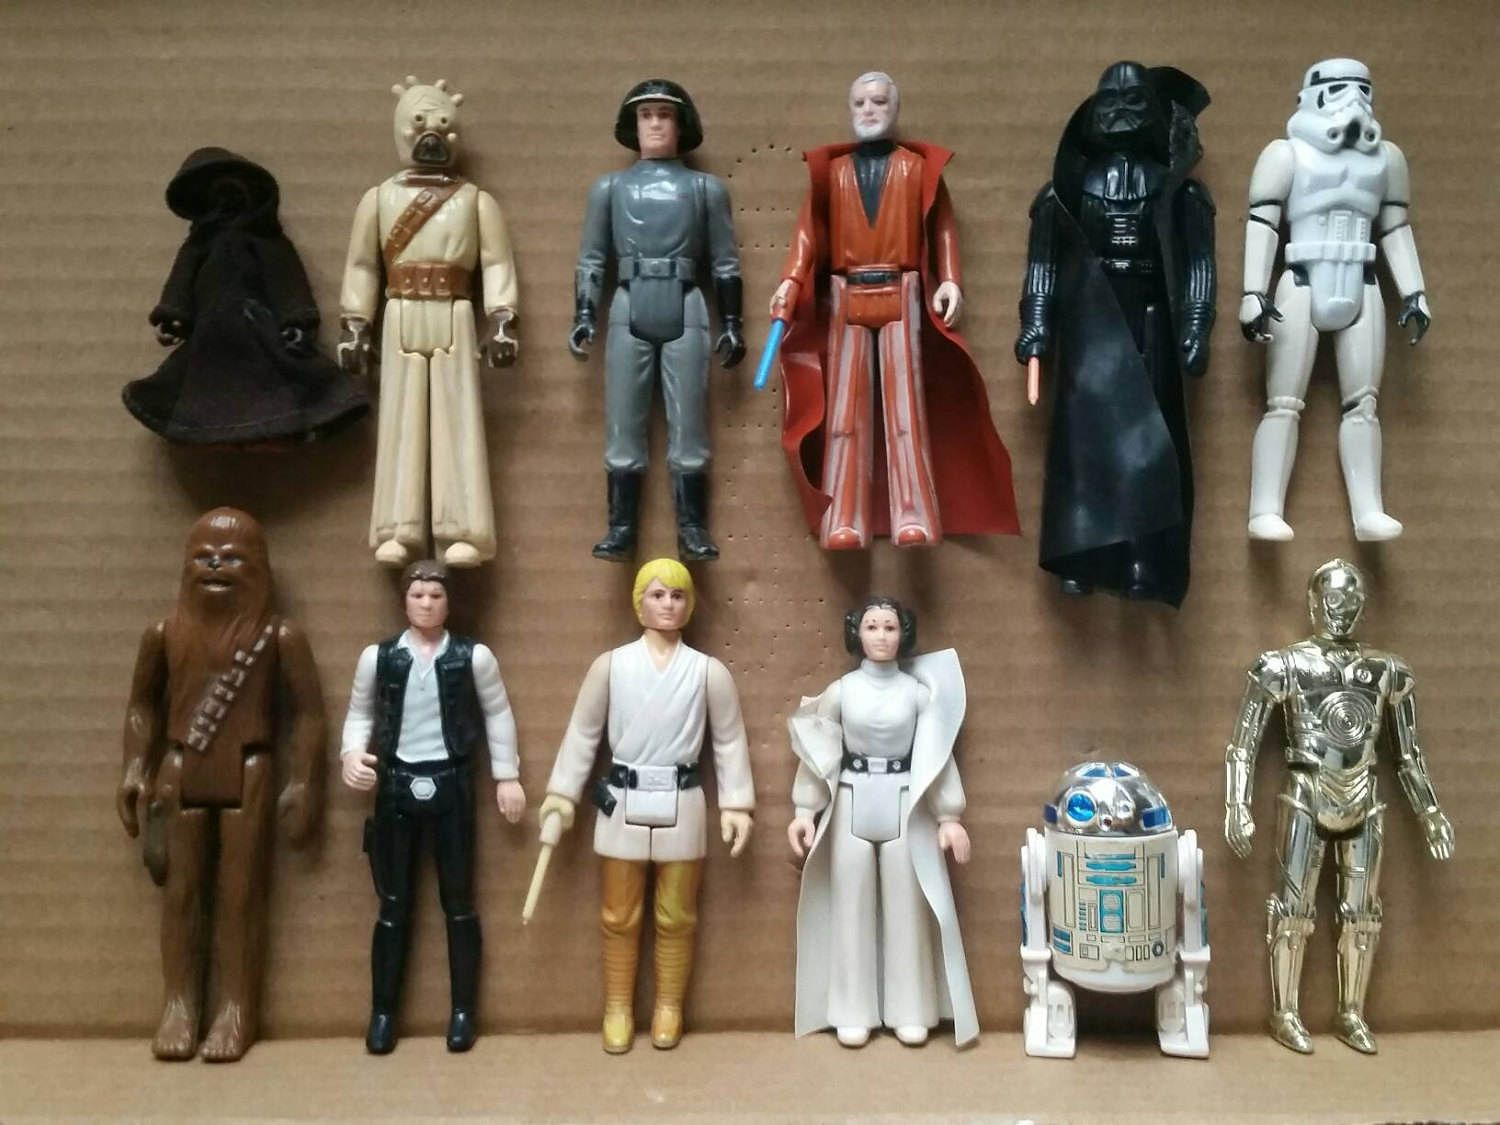 80s toys -  kenner star wars action figures